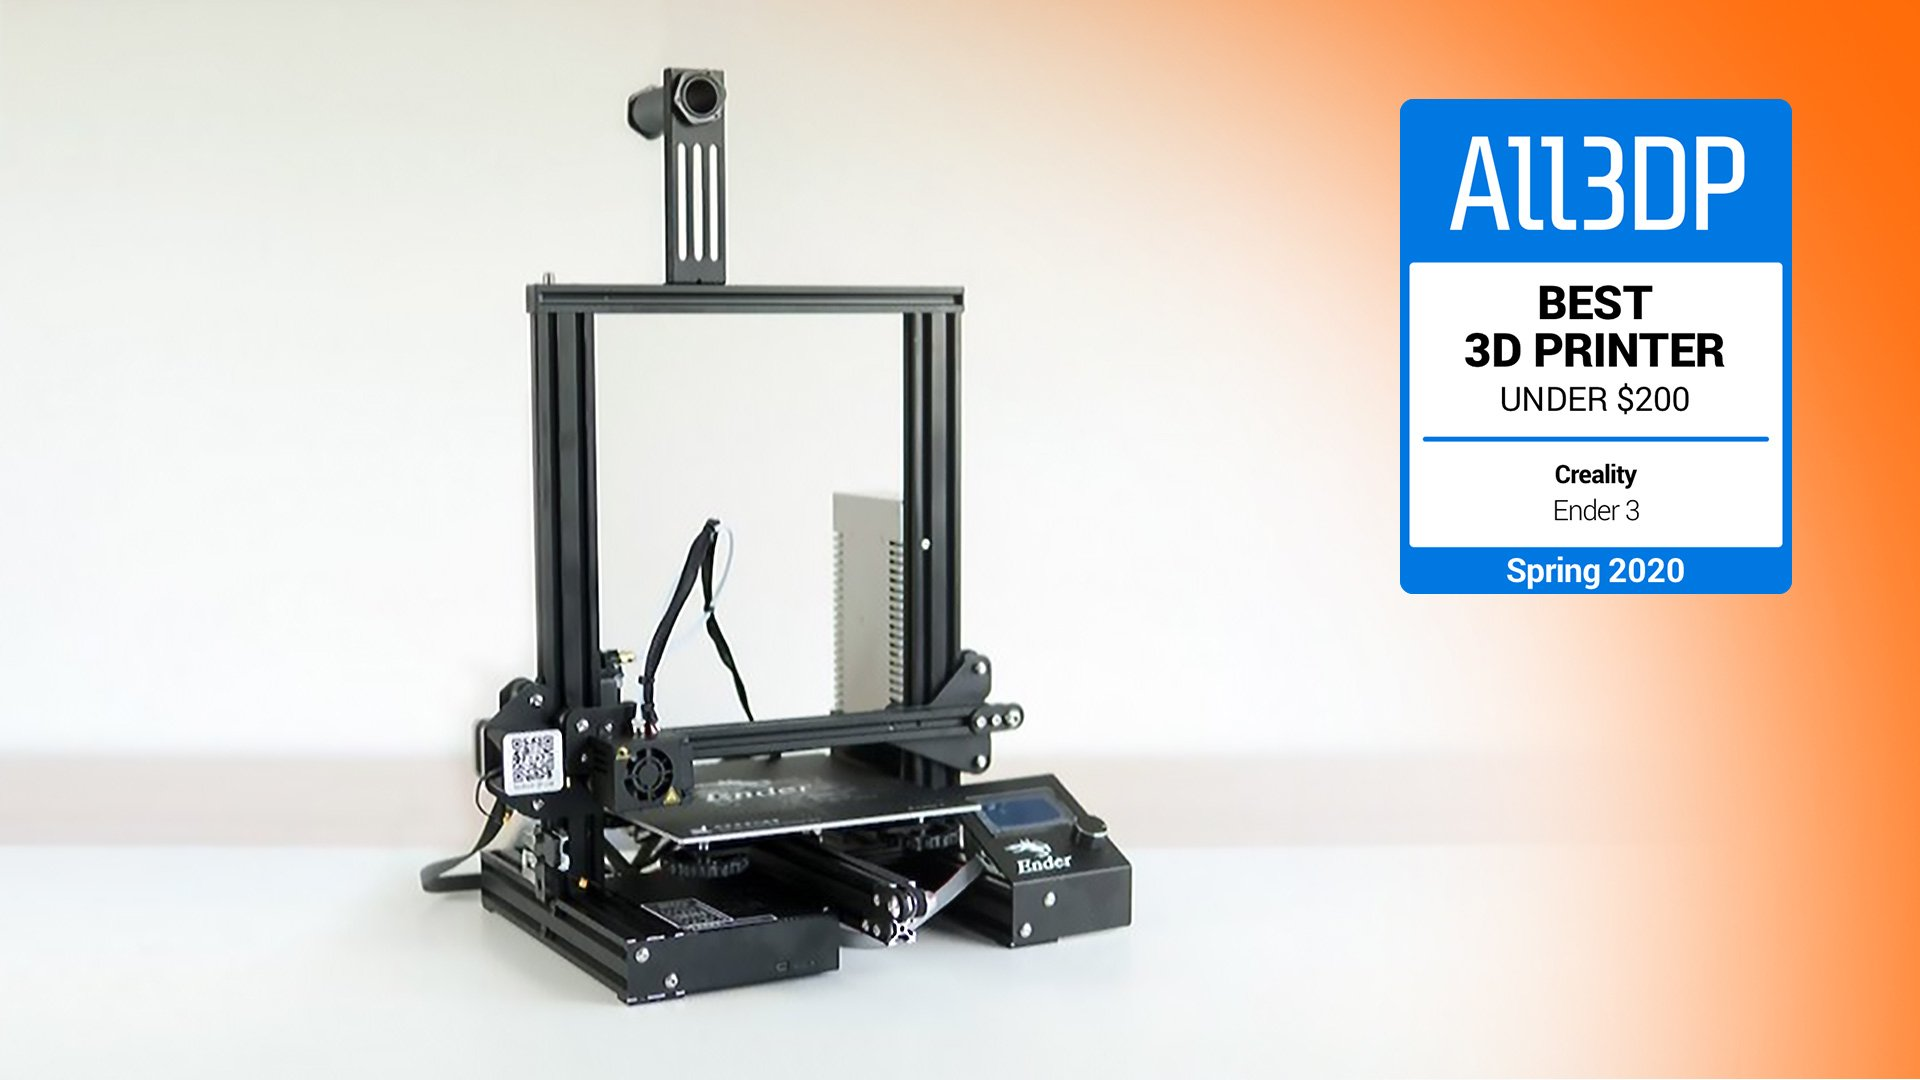 Creality Ender 3 Review: Best 3D Printer Under $200 | All3DP